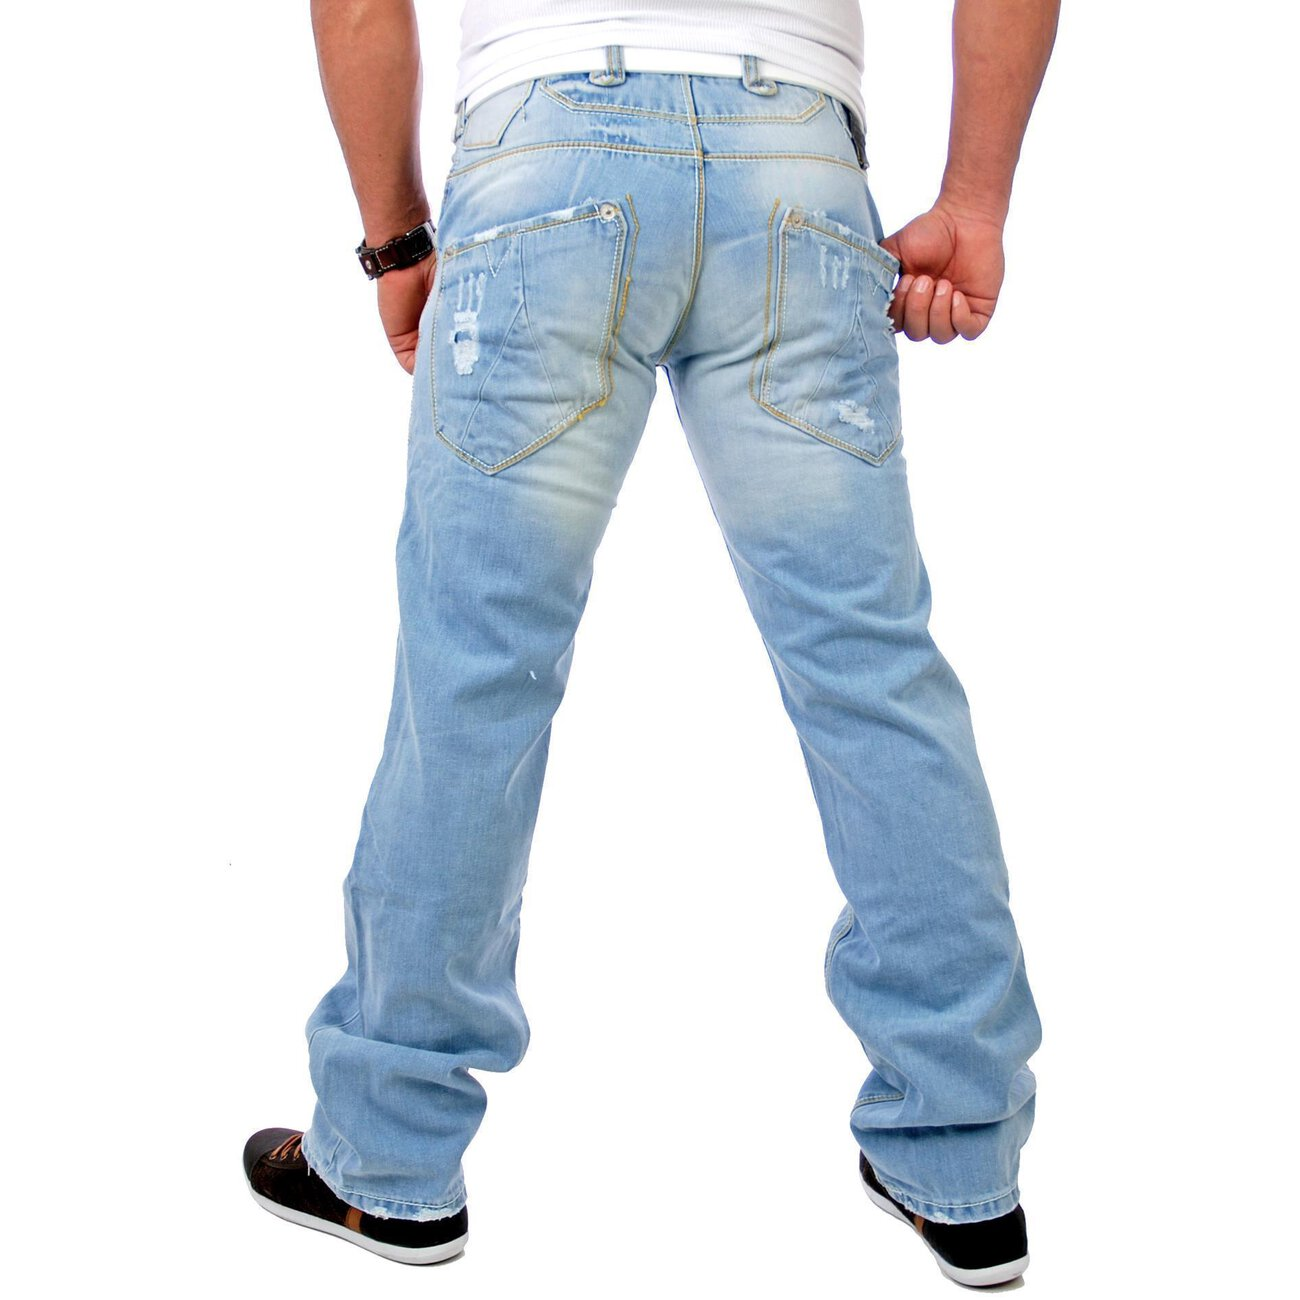 destroyed jeans hose tazzio herren 1095 jeanshosen. Black Bedroom Furniture Sets. Home Design Ideas